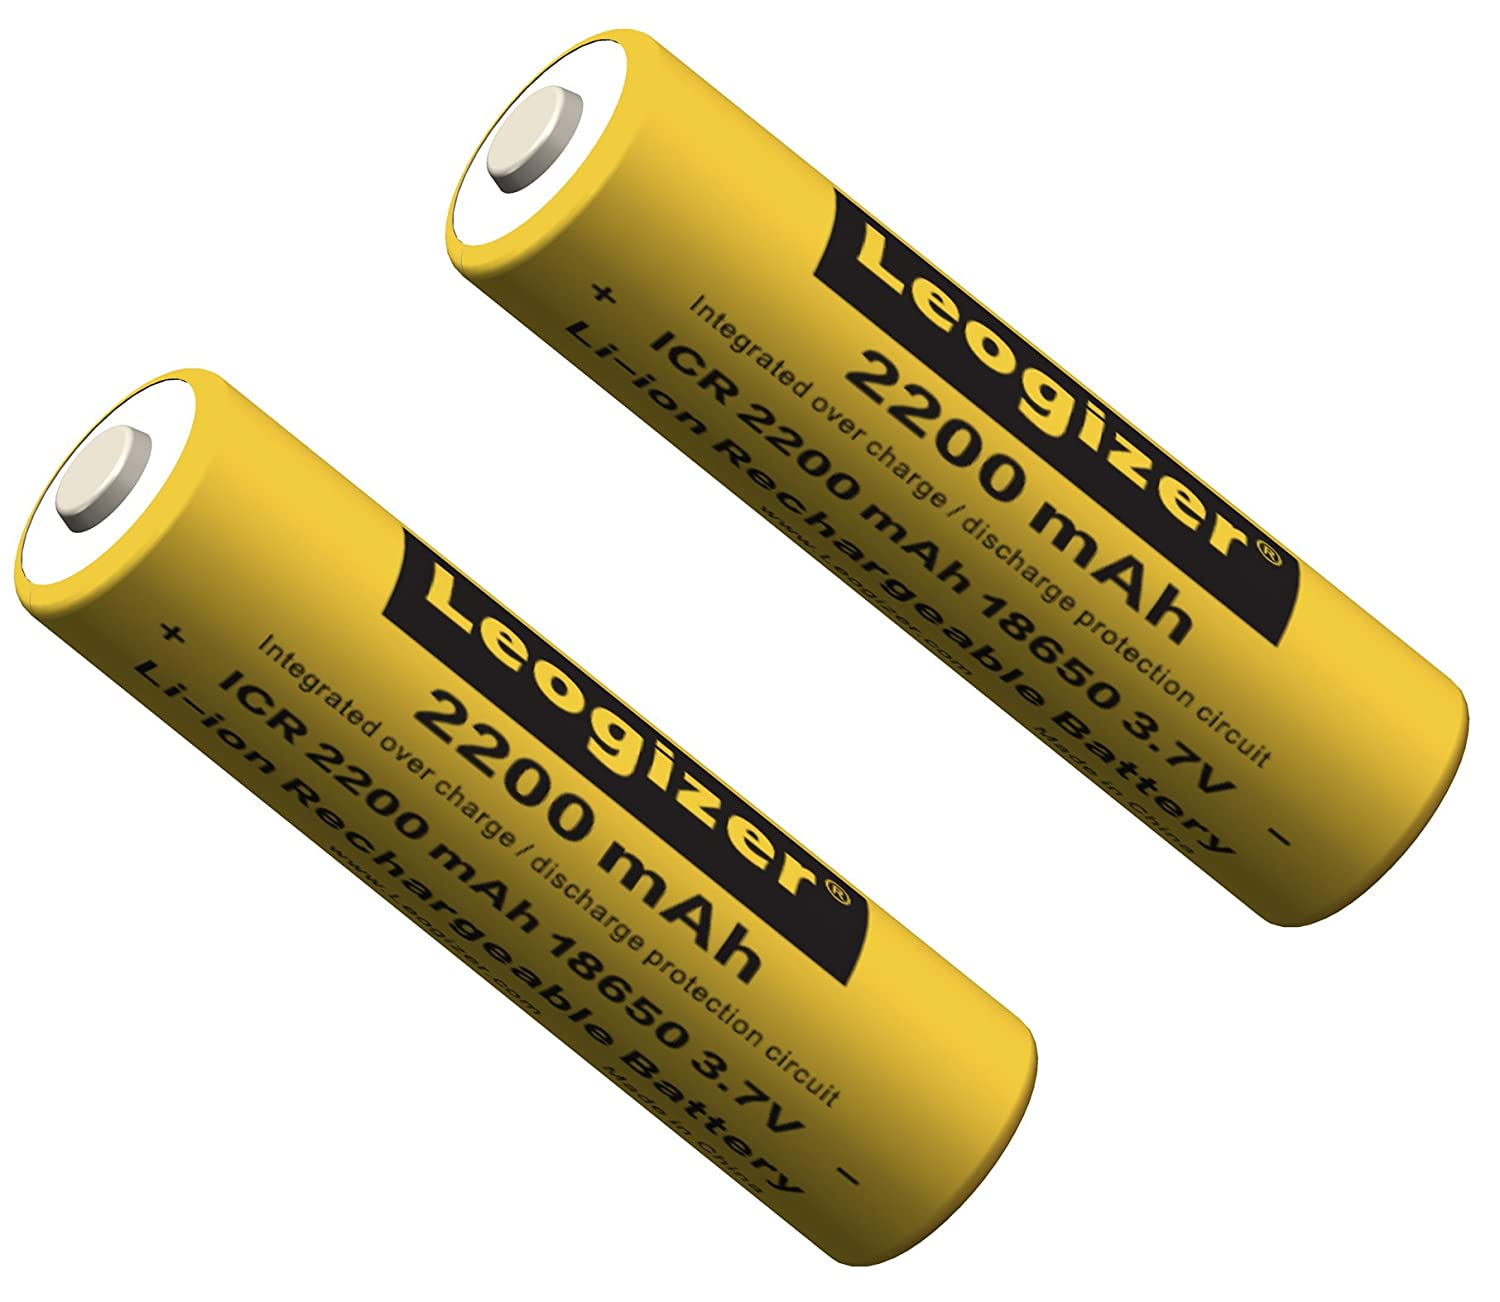 Leogizer Le22dt 18650 Lithium Ion Rechargeable Battery For Led Protection Circuit Images Of Flashlight With Board 37v Real 2200mah Capacity In Case 2pcs